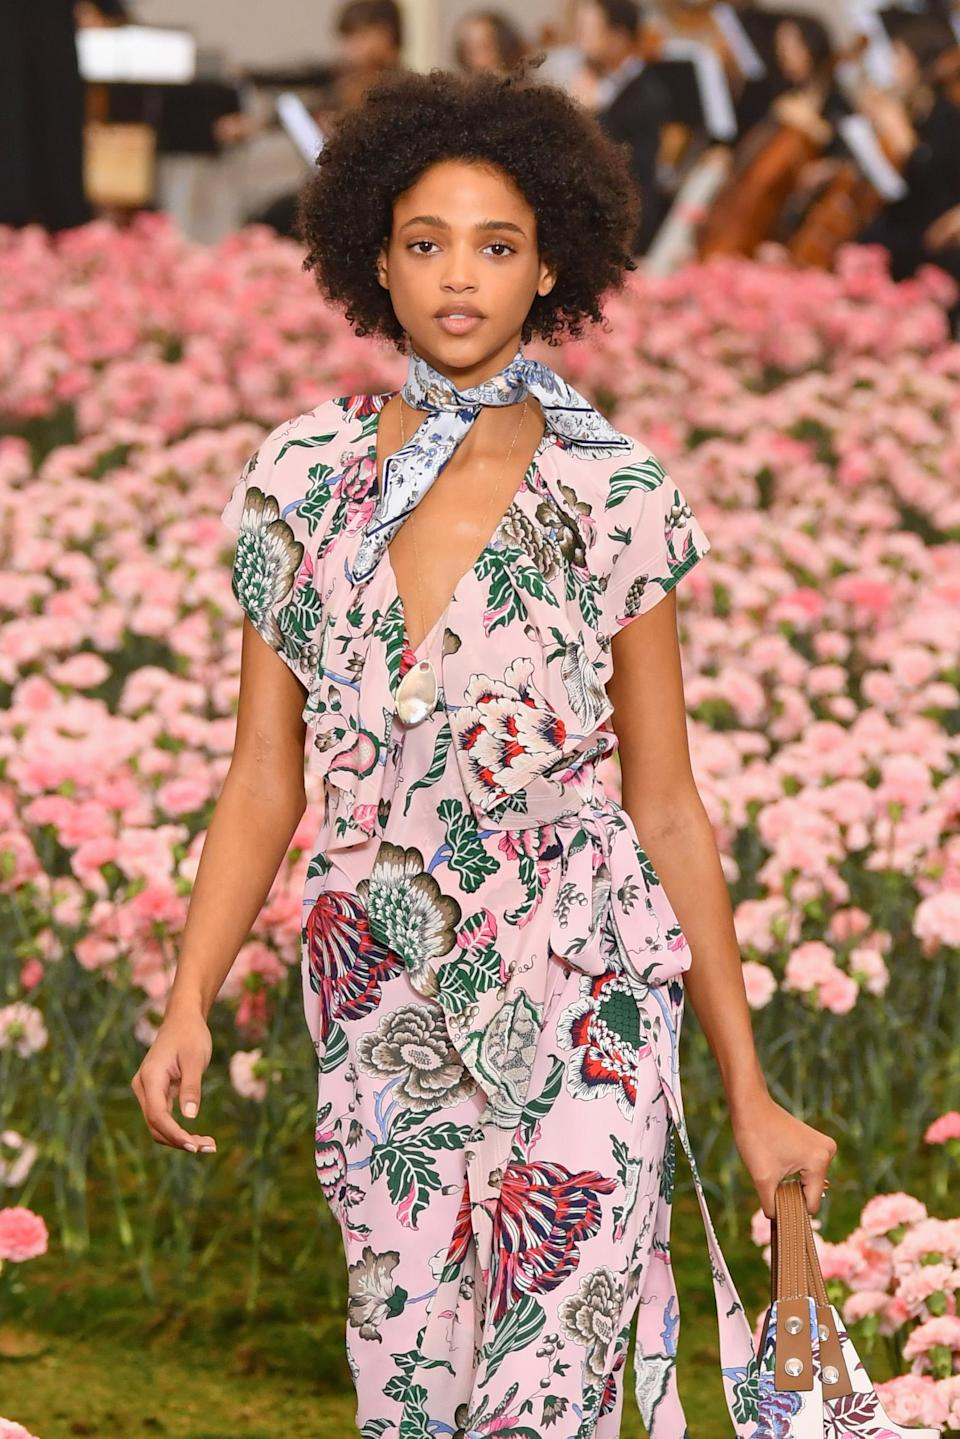 <p>This Afro cutie looks like a spring vision with her halo of curls. (Photo: Getty Images) </p>